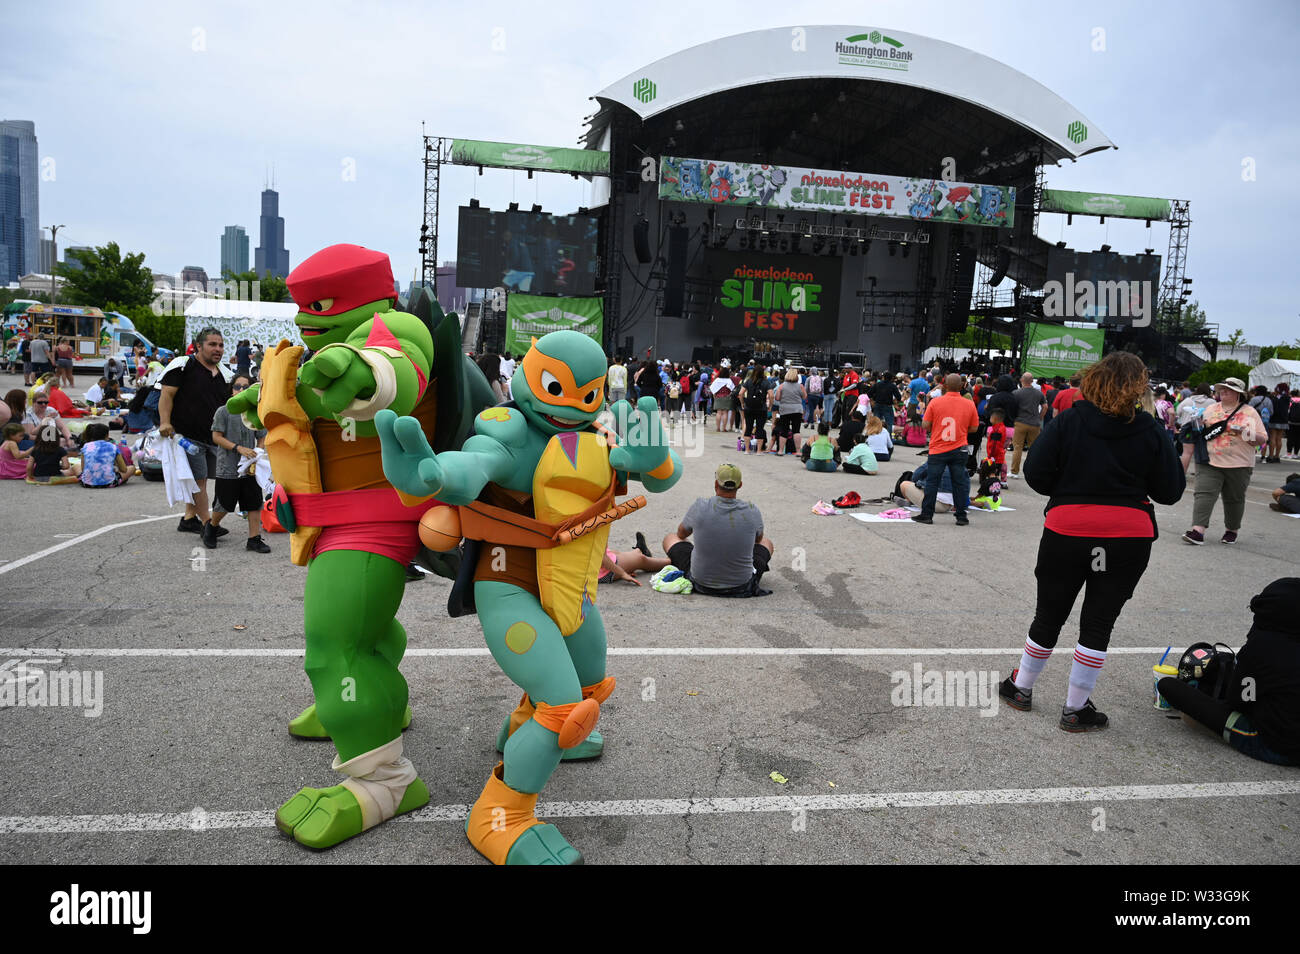 Nickelodeon SlimeFest 2019 at Huntington Bank Pavilion at Northerly Island in Chicago, IL, USA on June 8, 2019 Featuring: Atmosphere Where: Chciago, Illinois, United States When: 11 Jun 2019 Credit: Adam Bielawski/WENN.com - Stock Image